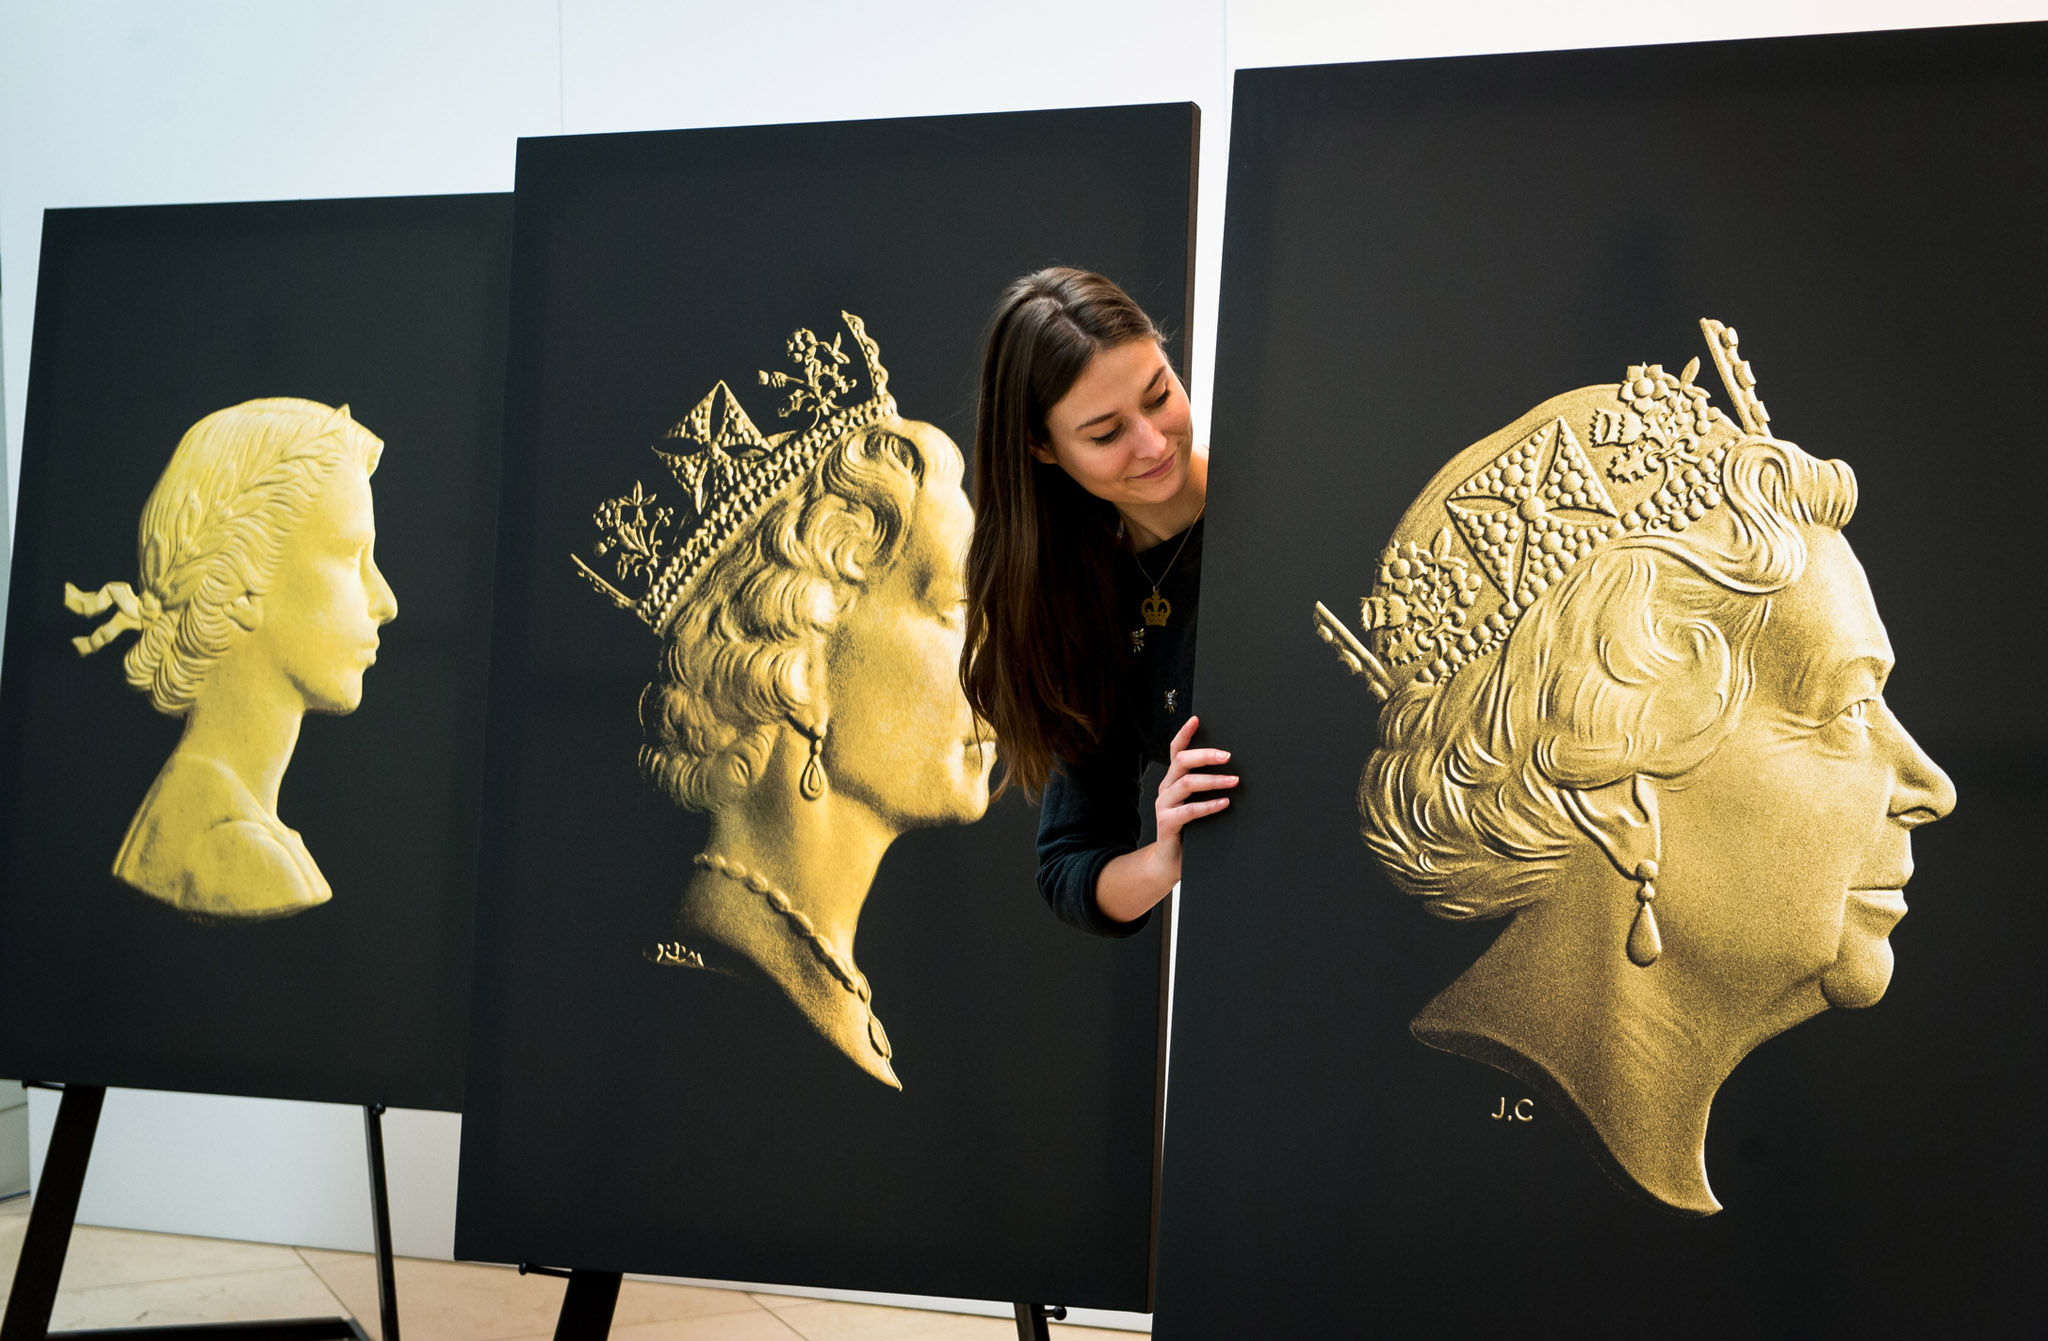 The Royal Mint unveil the new coinage portrait of the Queen at the National Portrait Gallery...The Royal Mint unveil the new coinage portrait of the Queen at the National Portrait Gallery, London on Monday 2nd March 2015 This picture: Flora Laven-Morris looks at the new portrait (right) PR Handout  For further information or a full release please contact Hope & Glory PR at royalmint@hopeandglorypr.com or call Sasha / Corinna on 07785 628 917 / 07532 171 496 Copyright: © Mikael Buck +44 (0) 782 820 1042 http://www.mikaelbuck.com